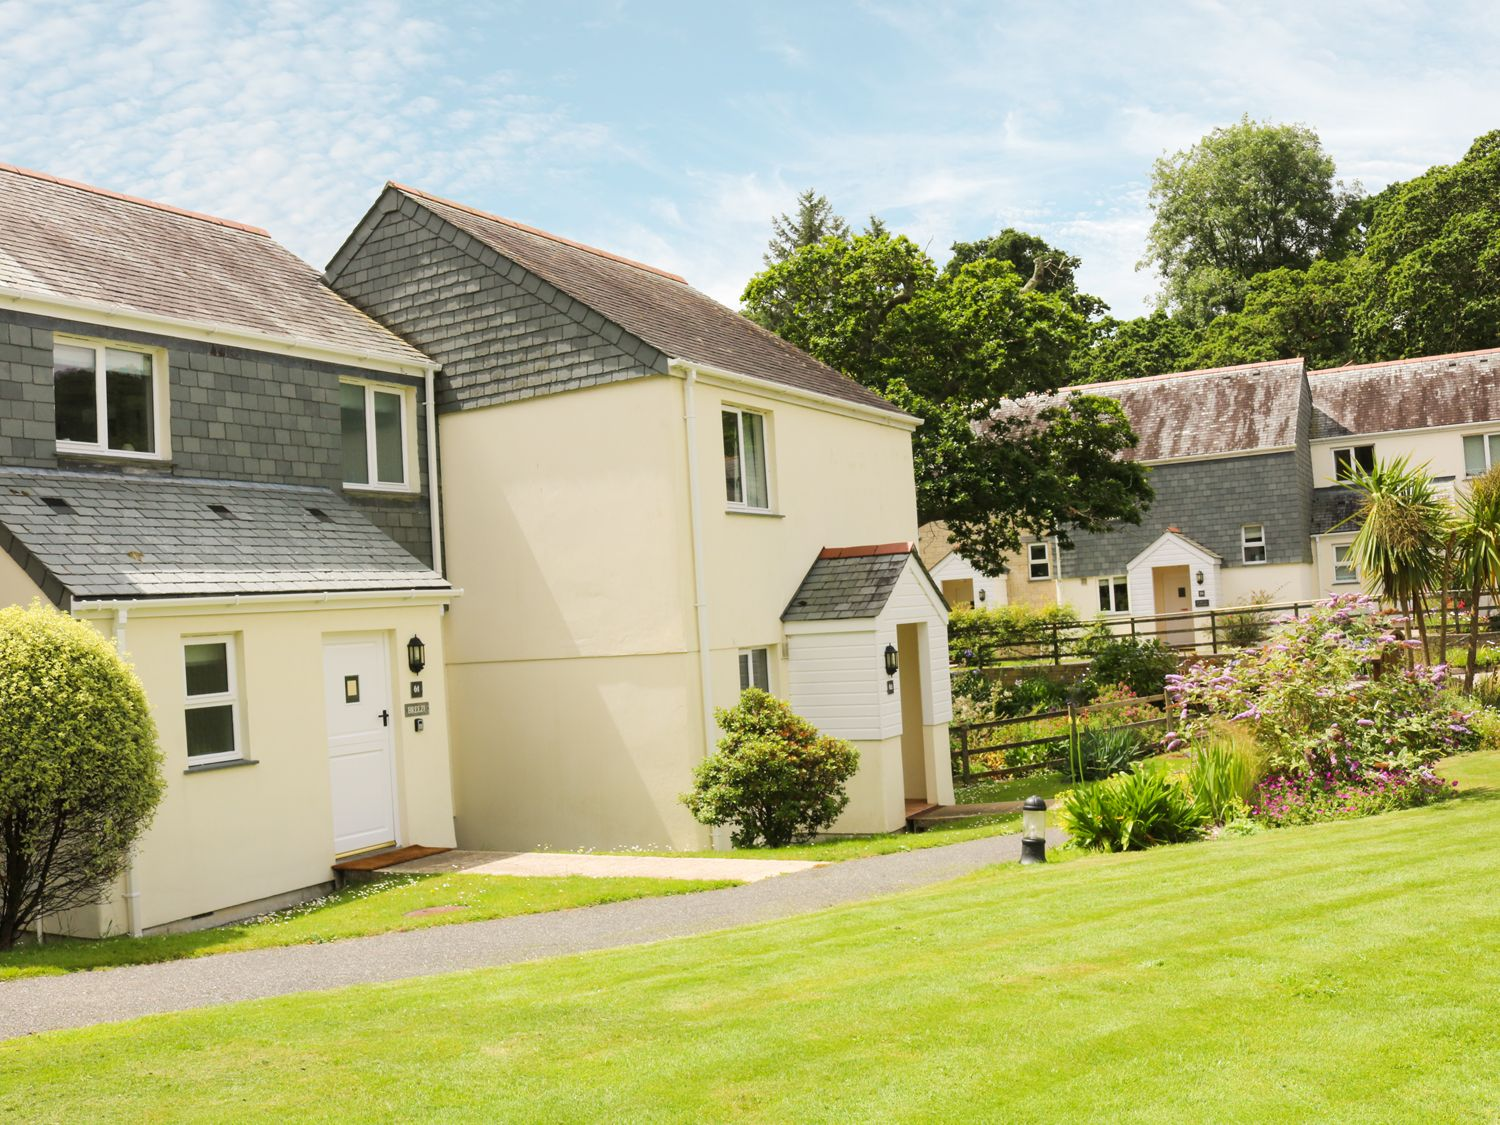 Breeze Cottage, Falmouth, Cornwall